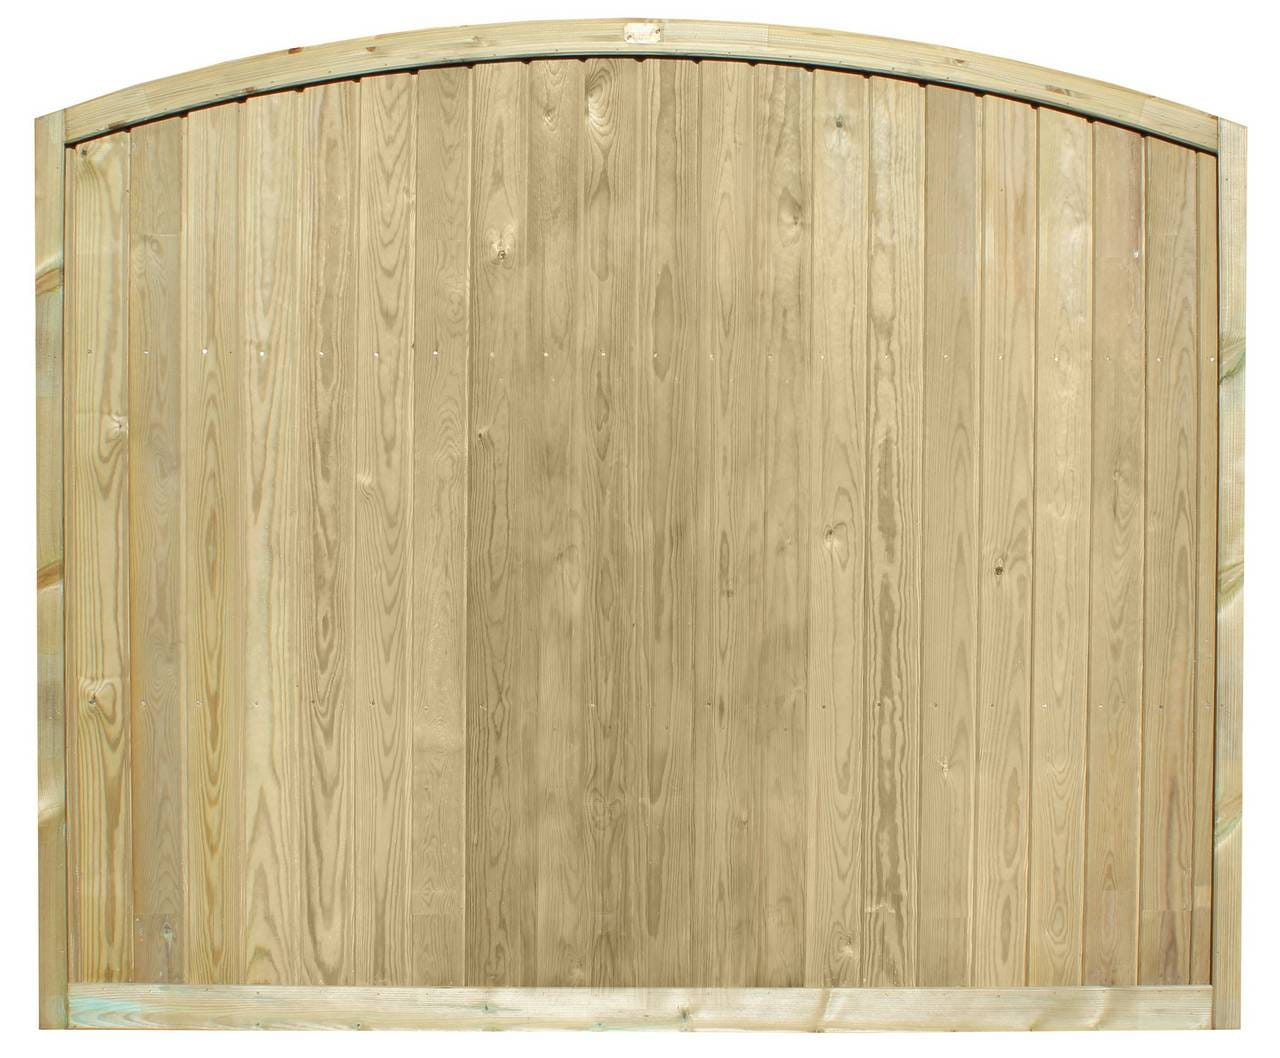 Tongue and Groove Convex Fence Panel